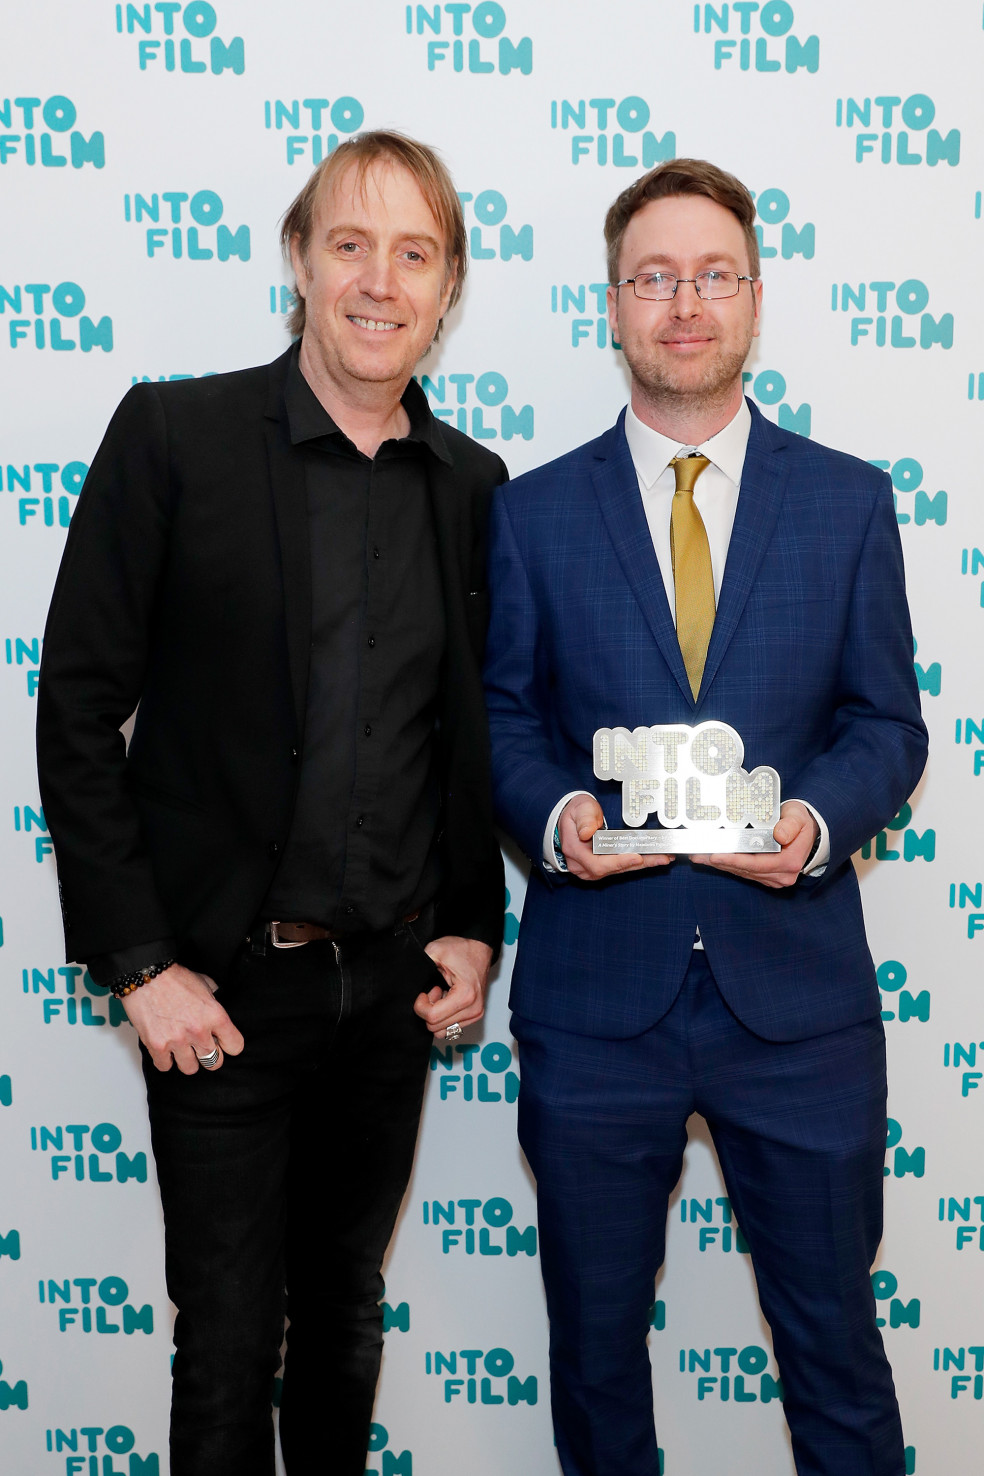 Teacher of the Year winner Rhys Roberts with actor Rhys Ifans